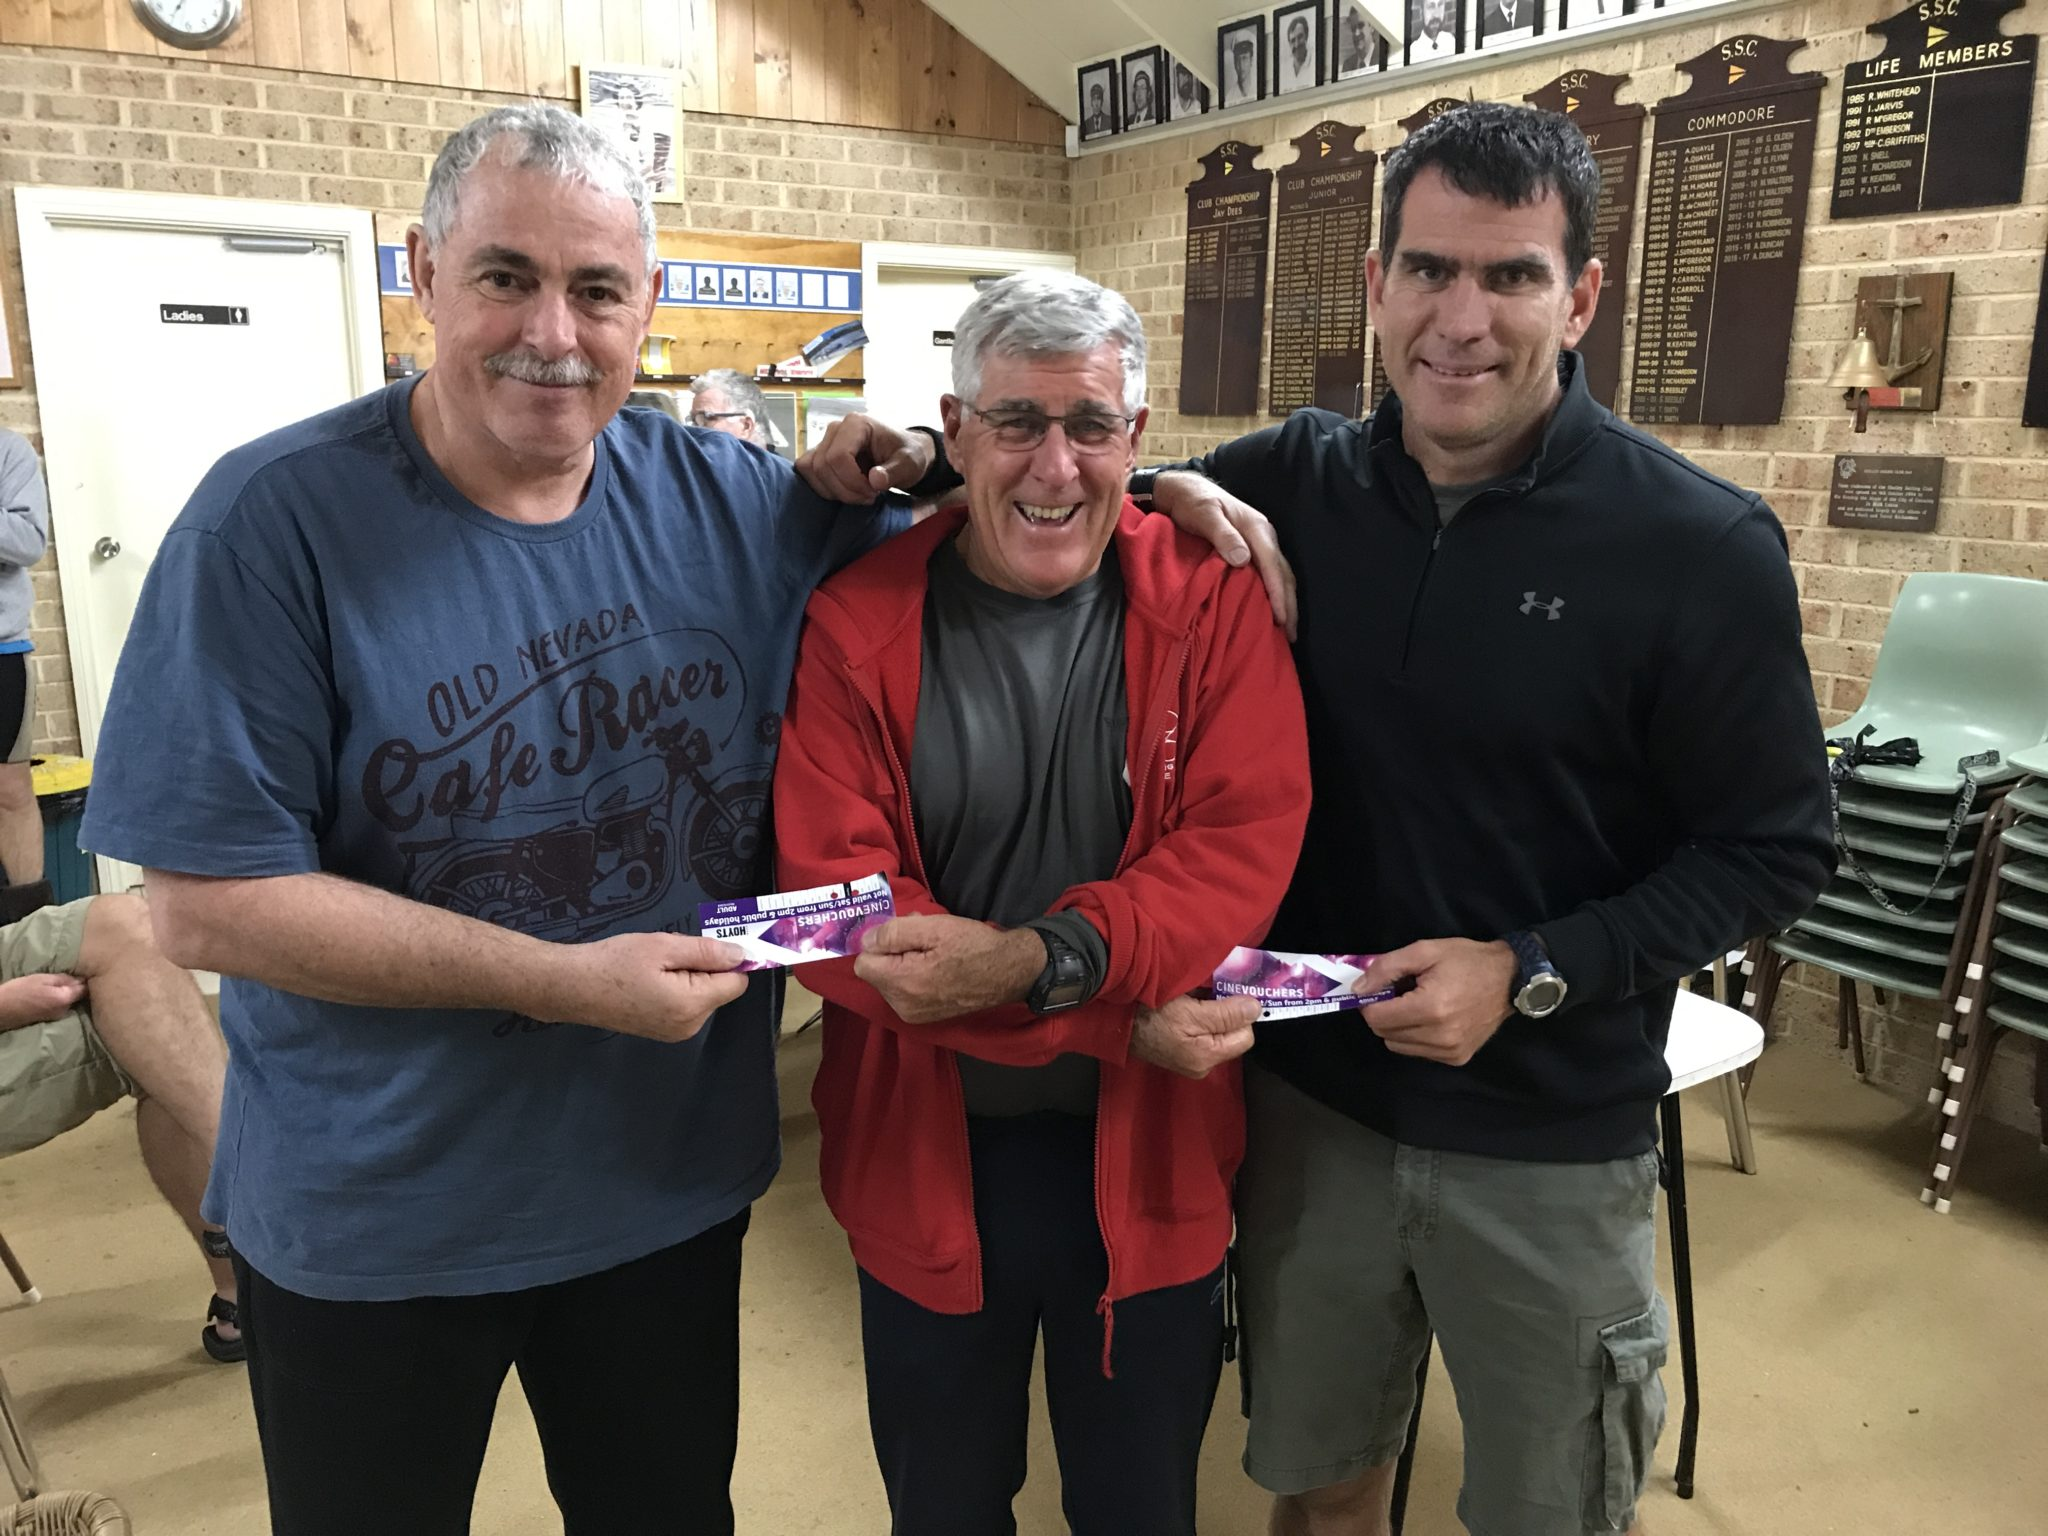 Tues 29th August 2017: Tonights photo shows club member Joe Wilson presenting Louis Botes and Stuart Hyde with winning movie vouchers